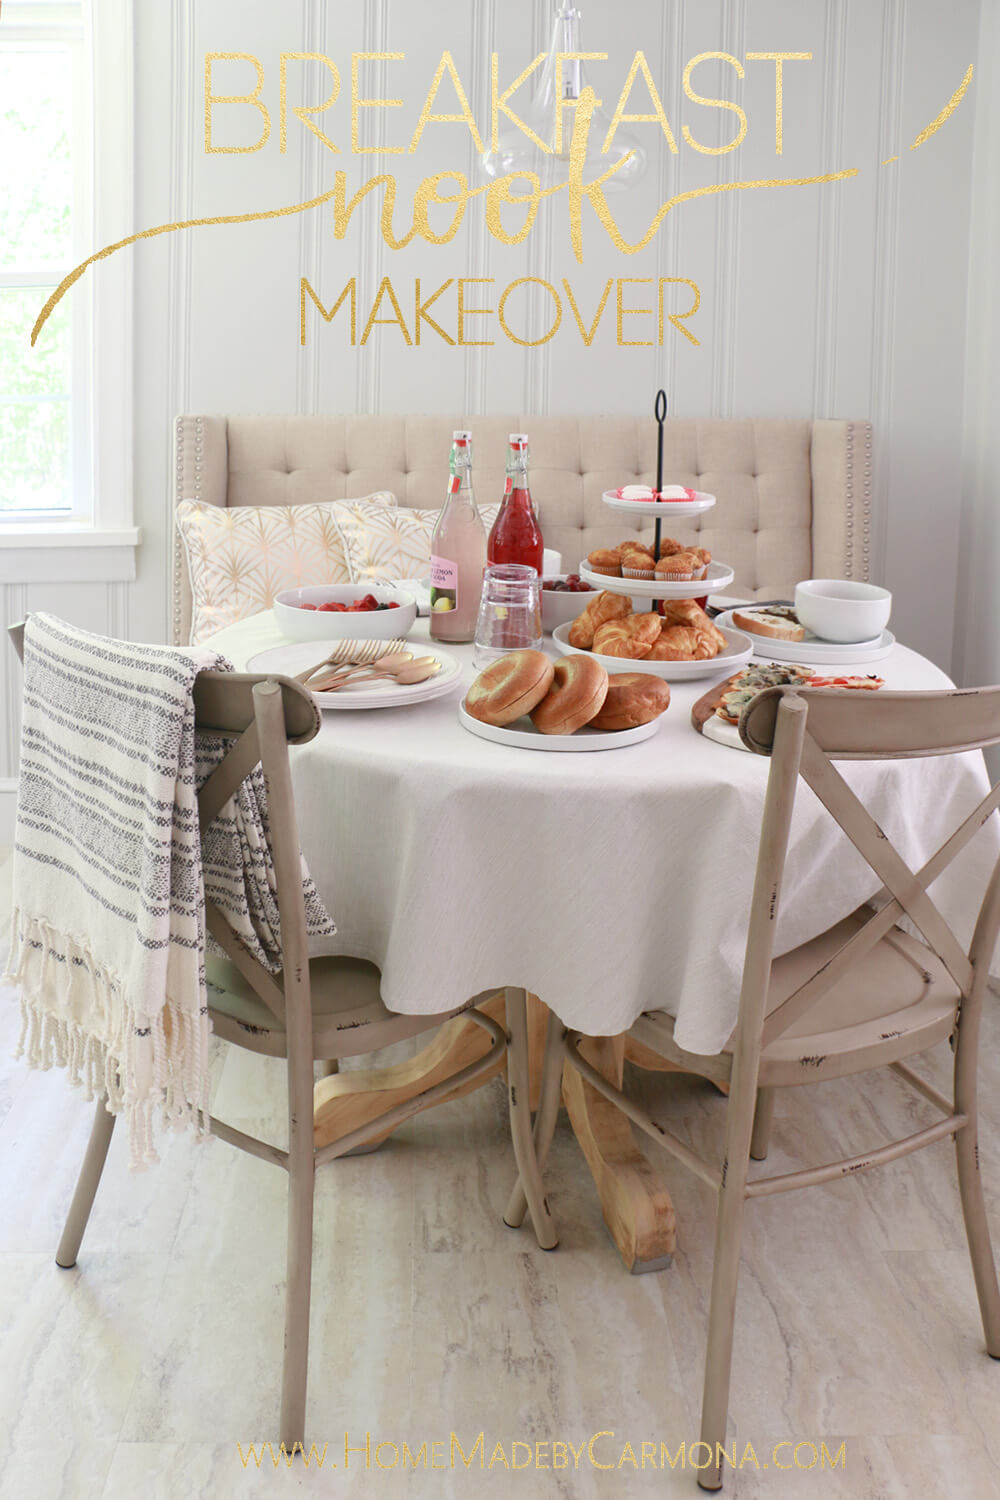 Breakfast nook makeover - One Room Challenge